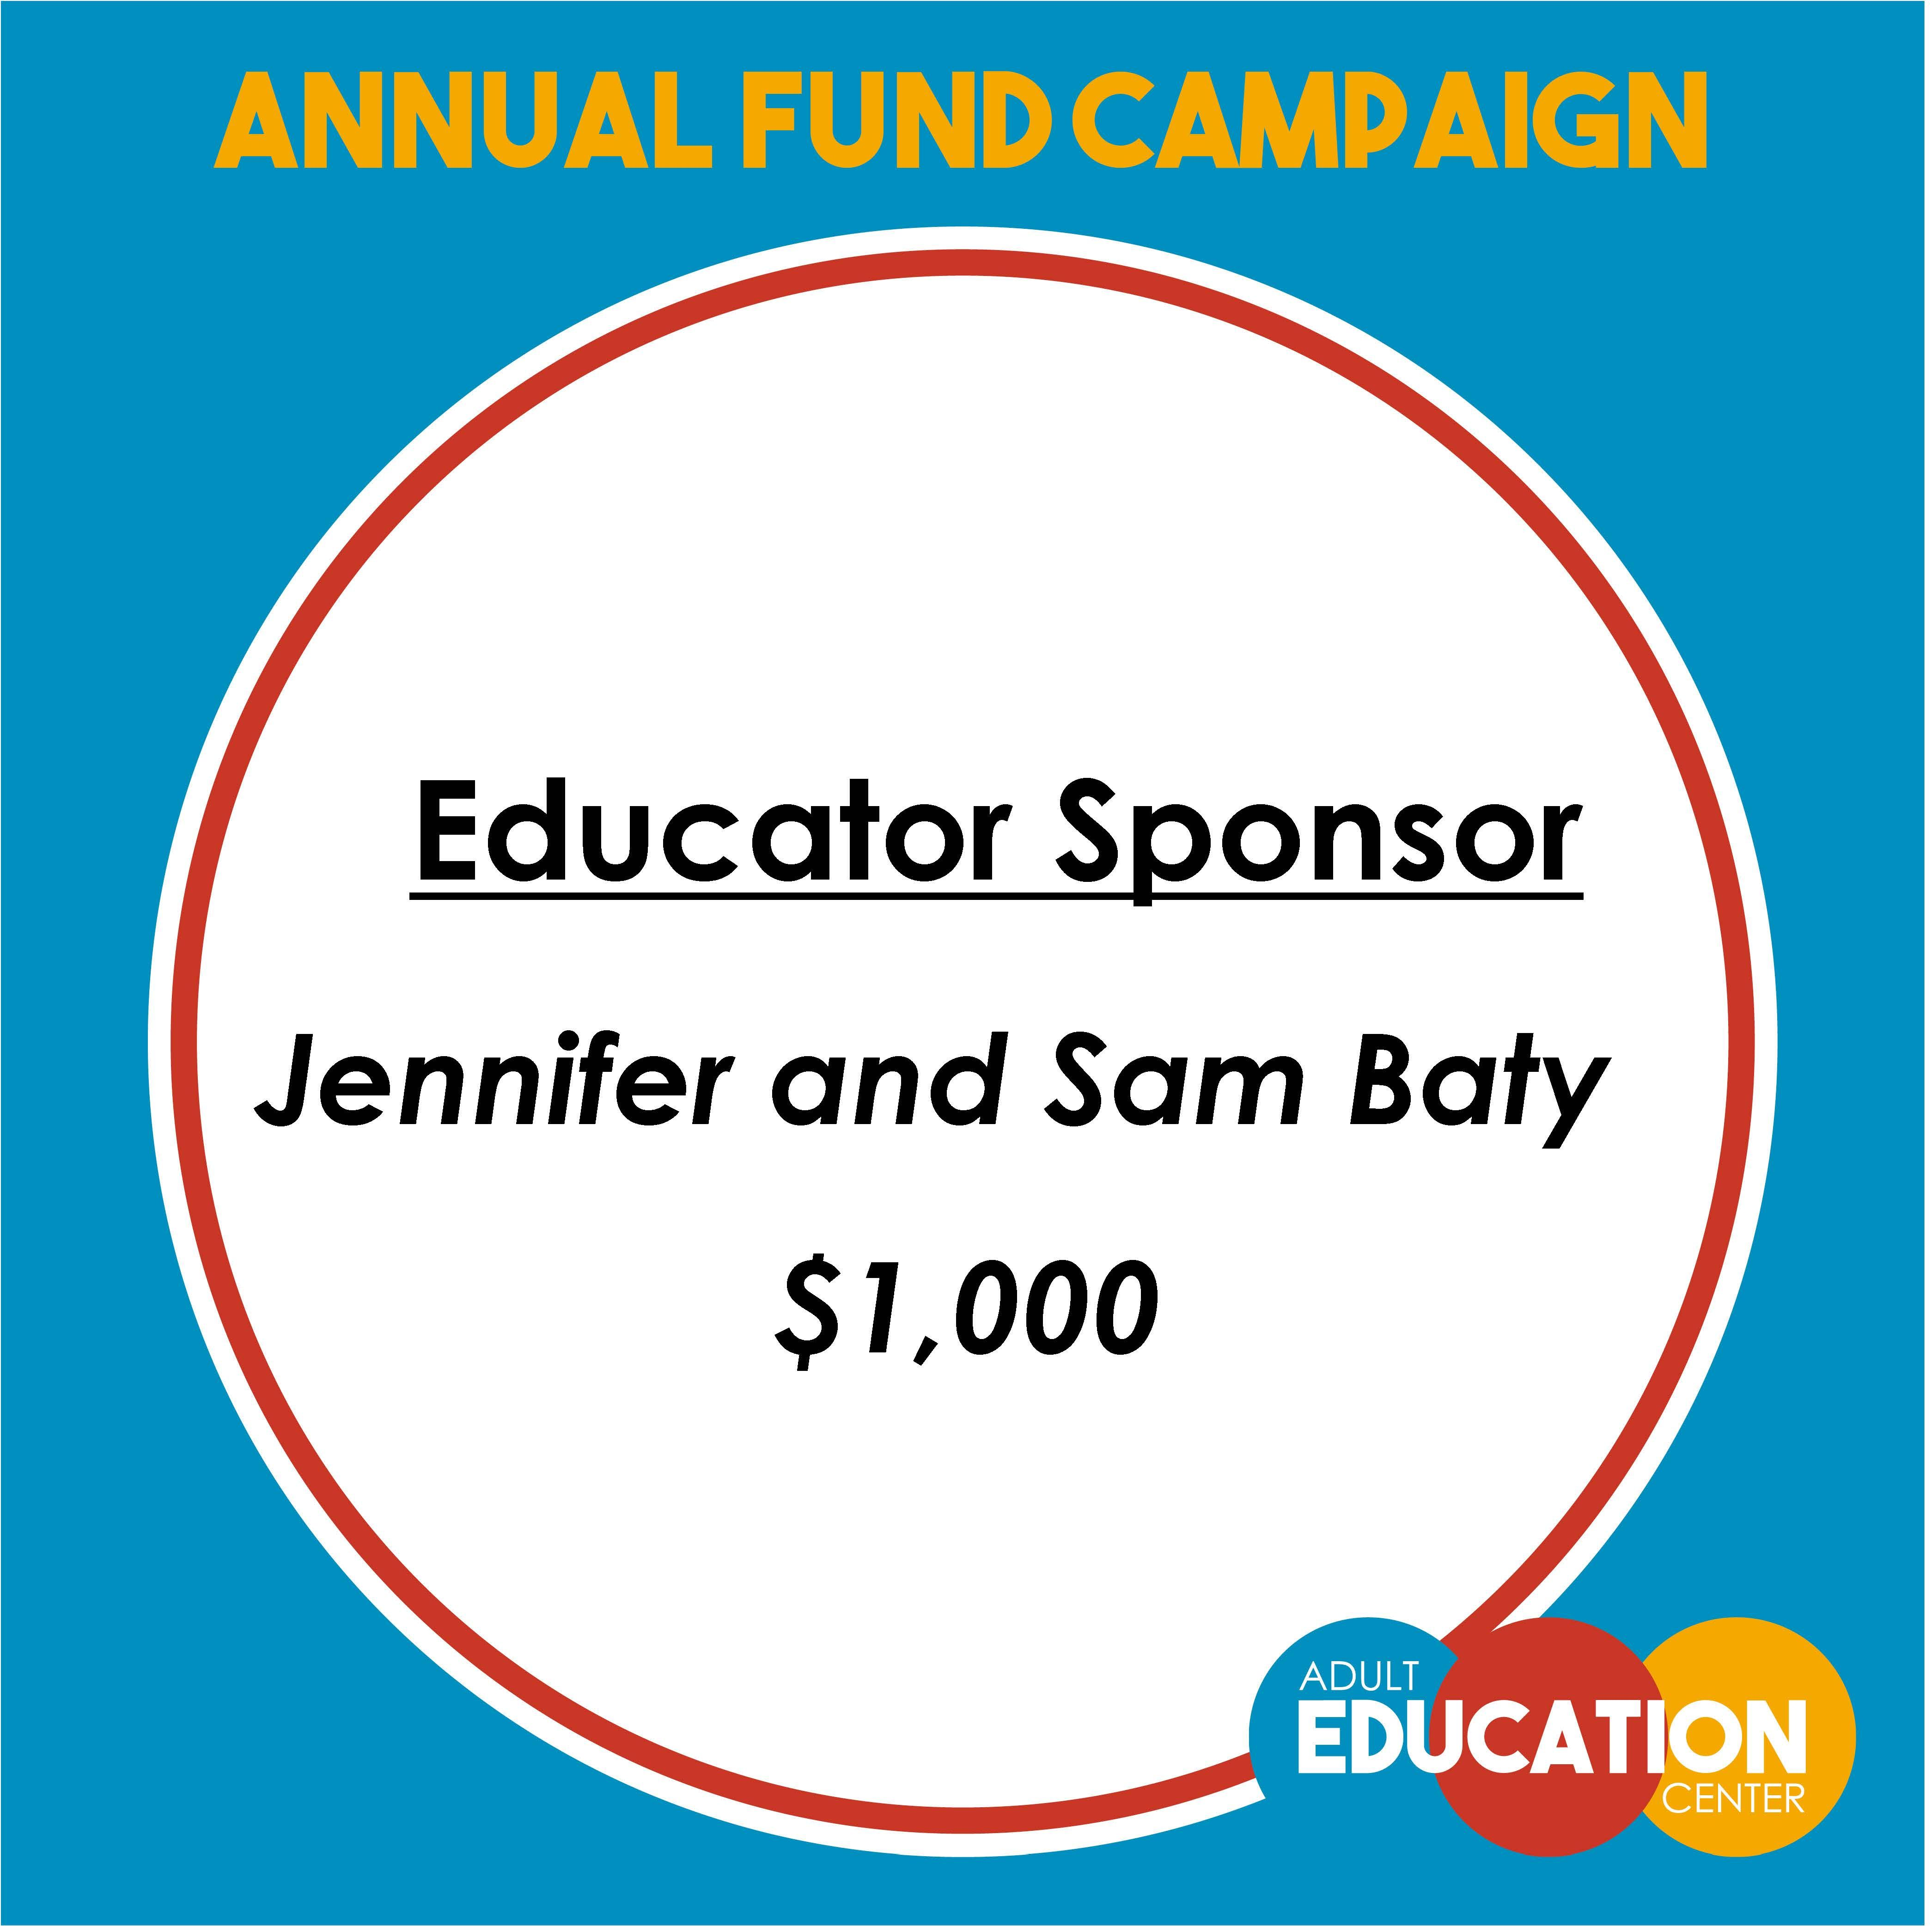 Jennifer and Sam Baty - Educator Sponsor - $1,000